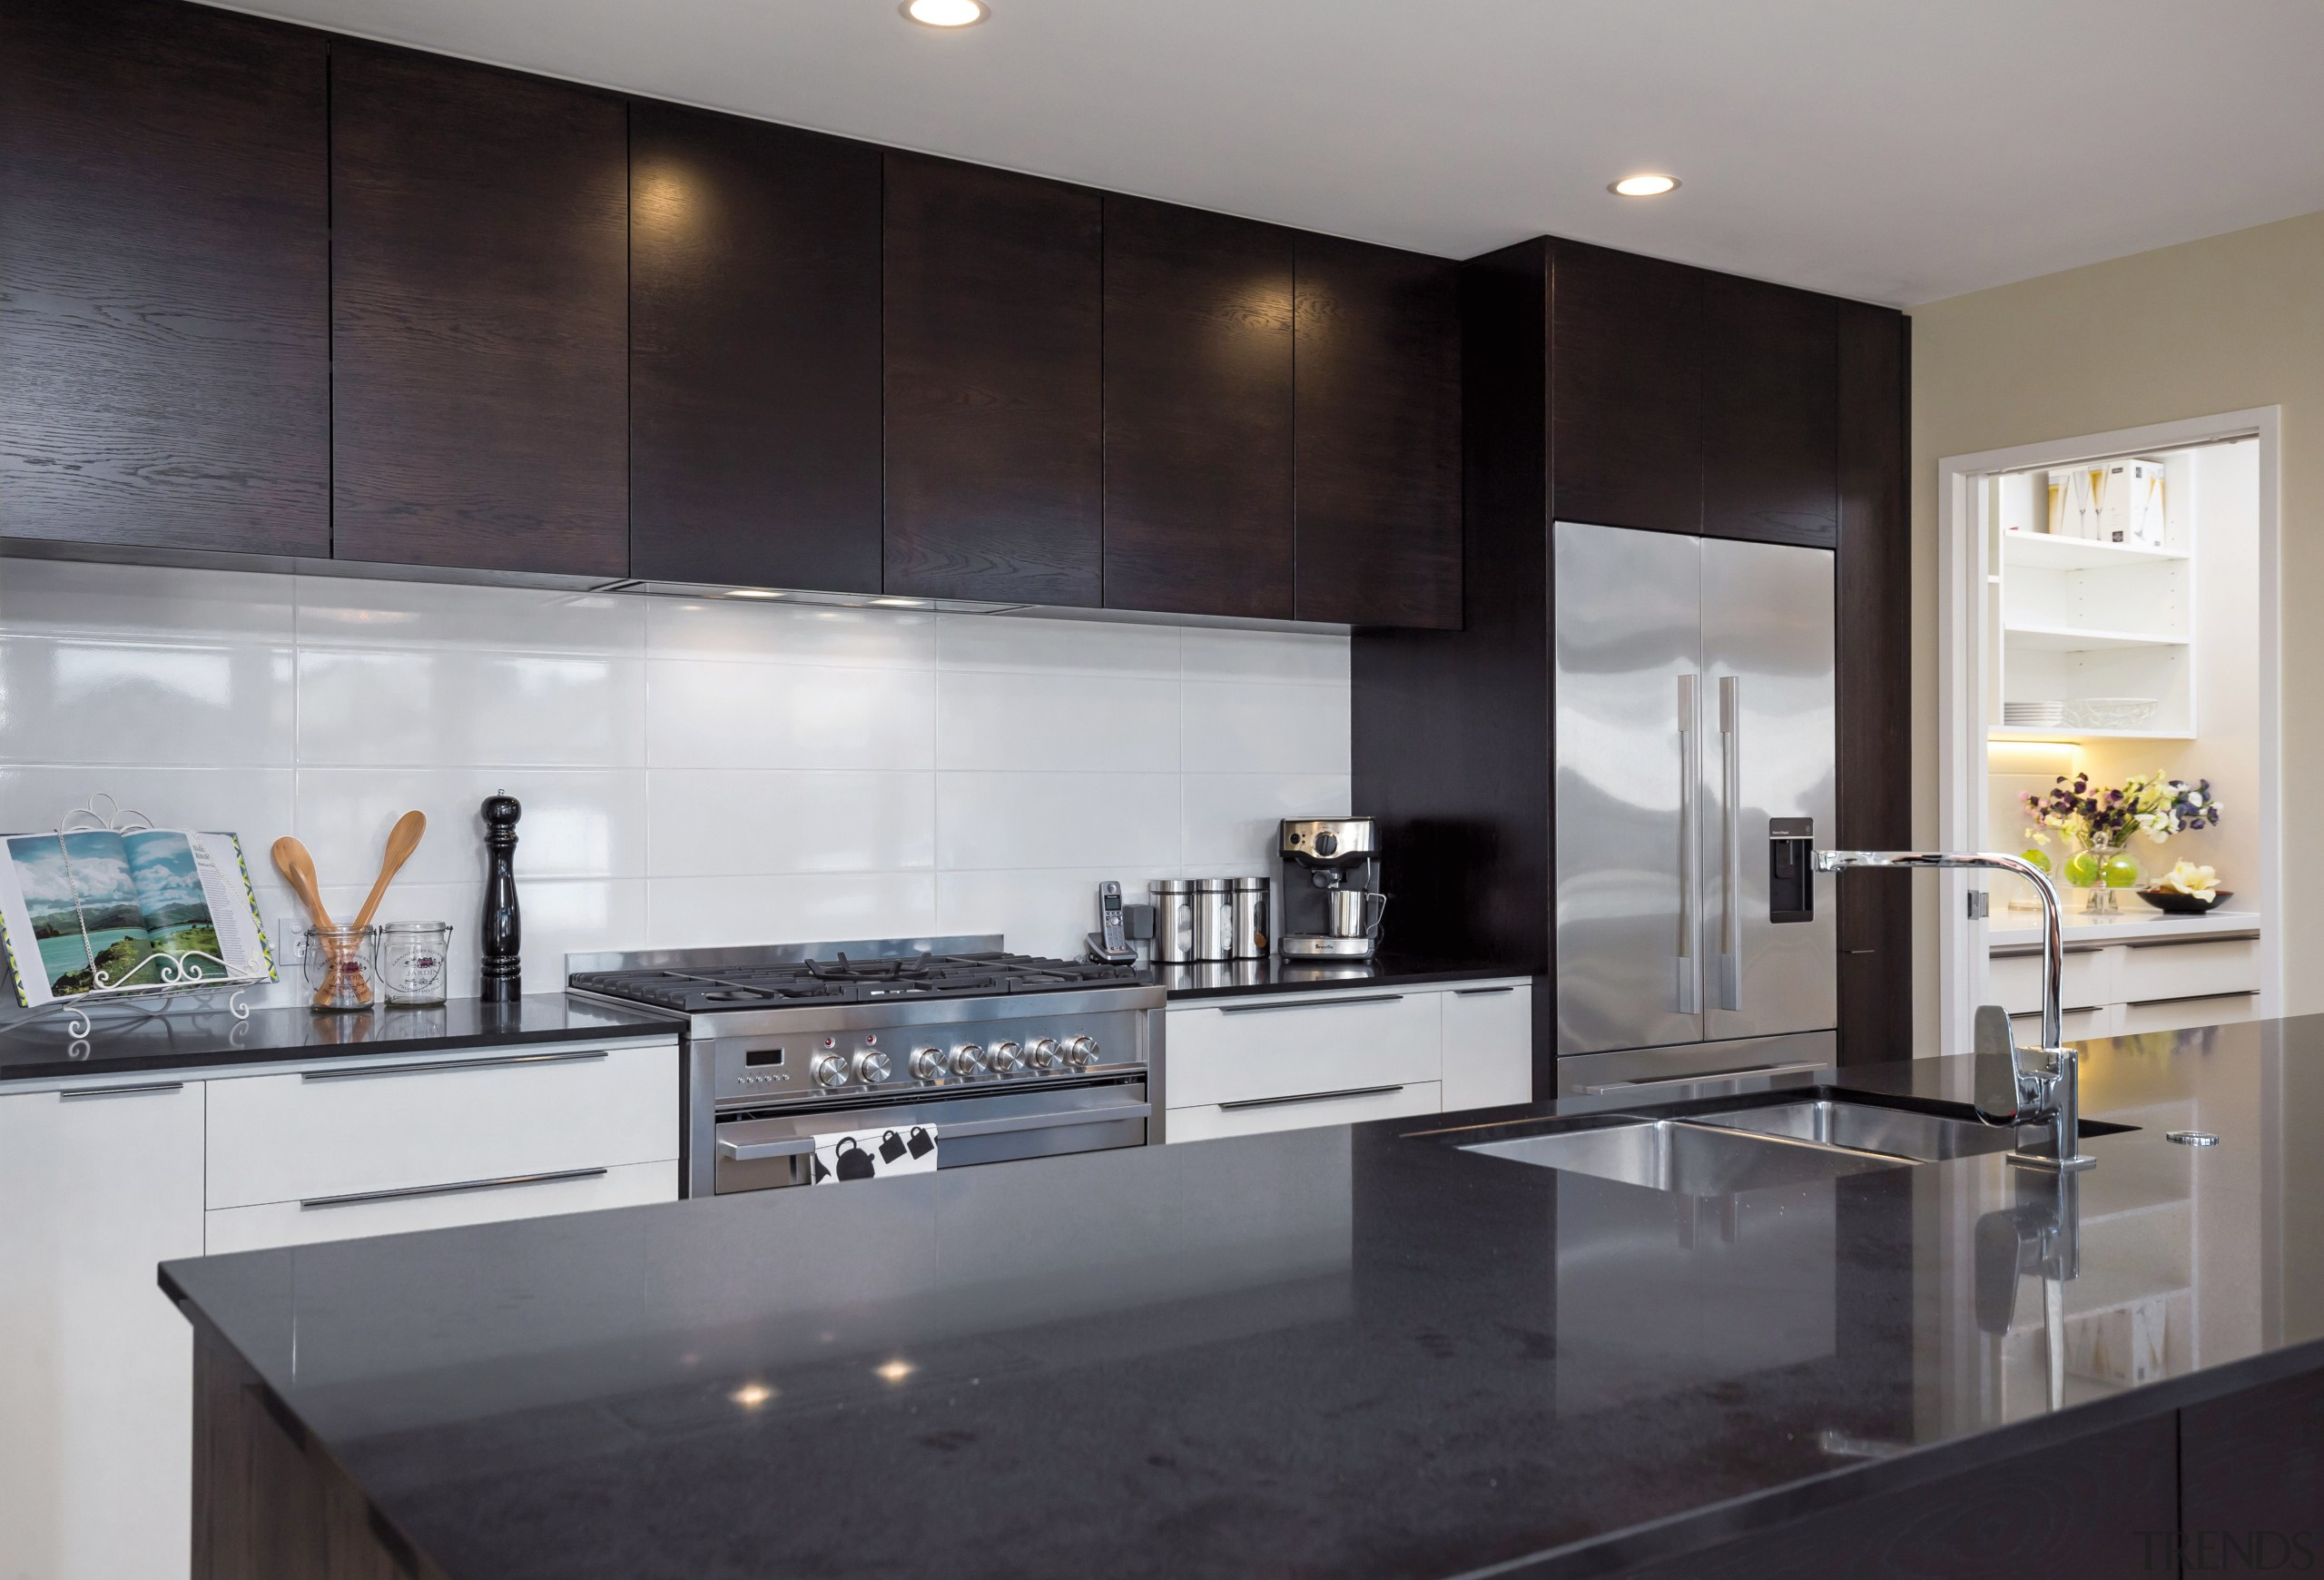 Ample storage is a feature of this kitchen, countertop, interior design, kitchen, gray, black